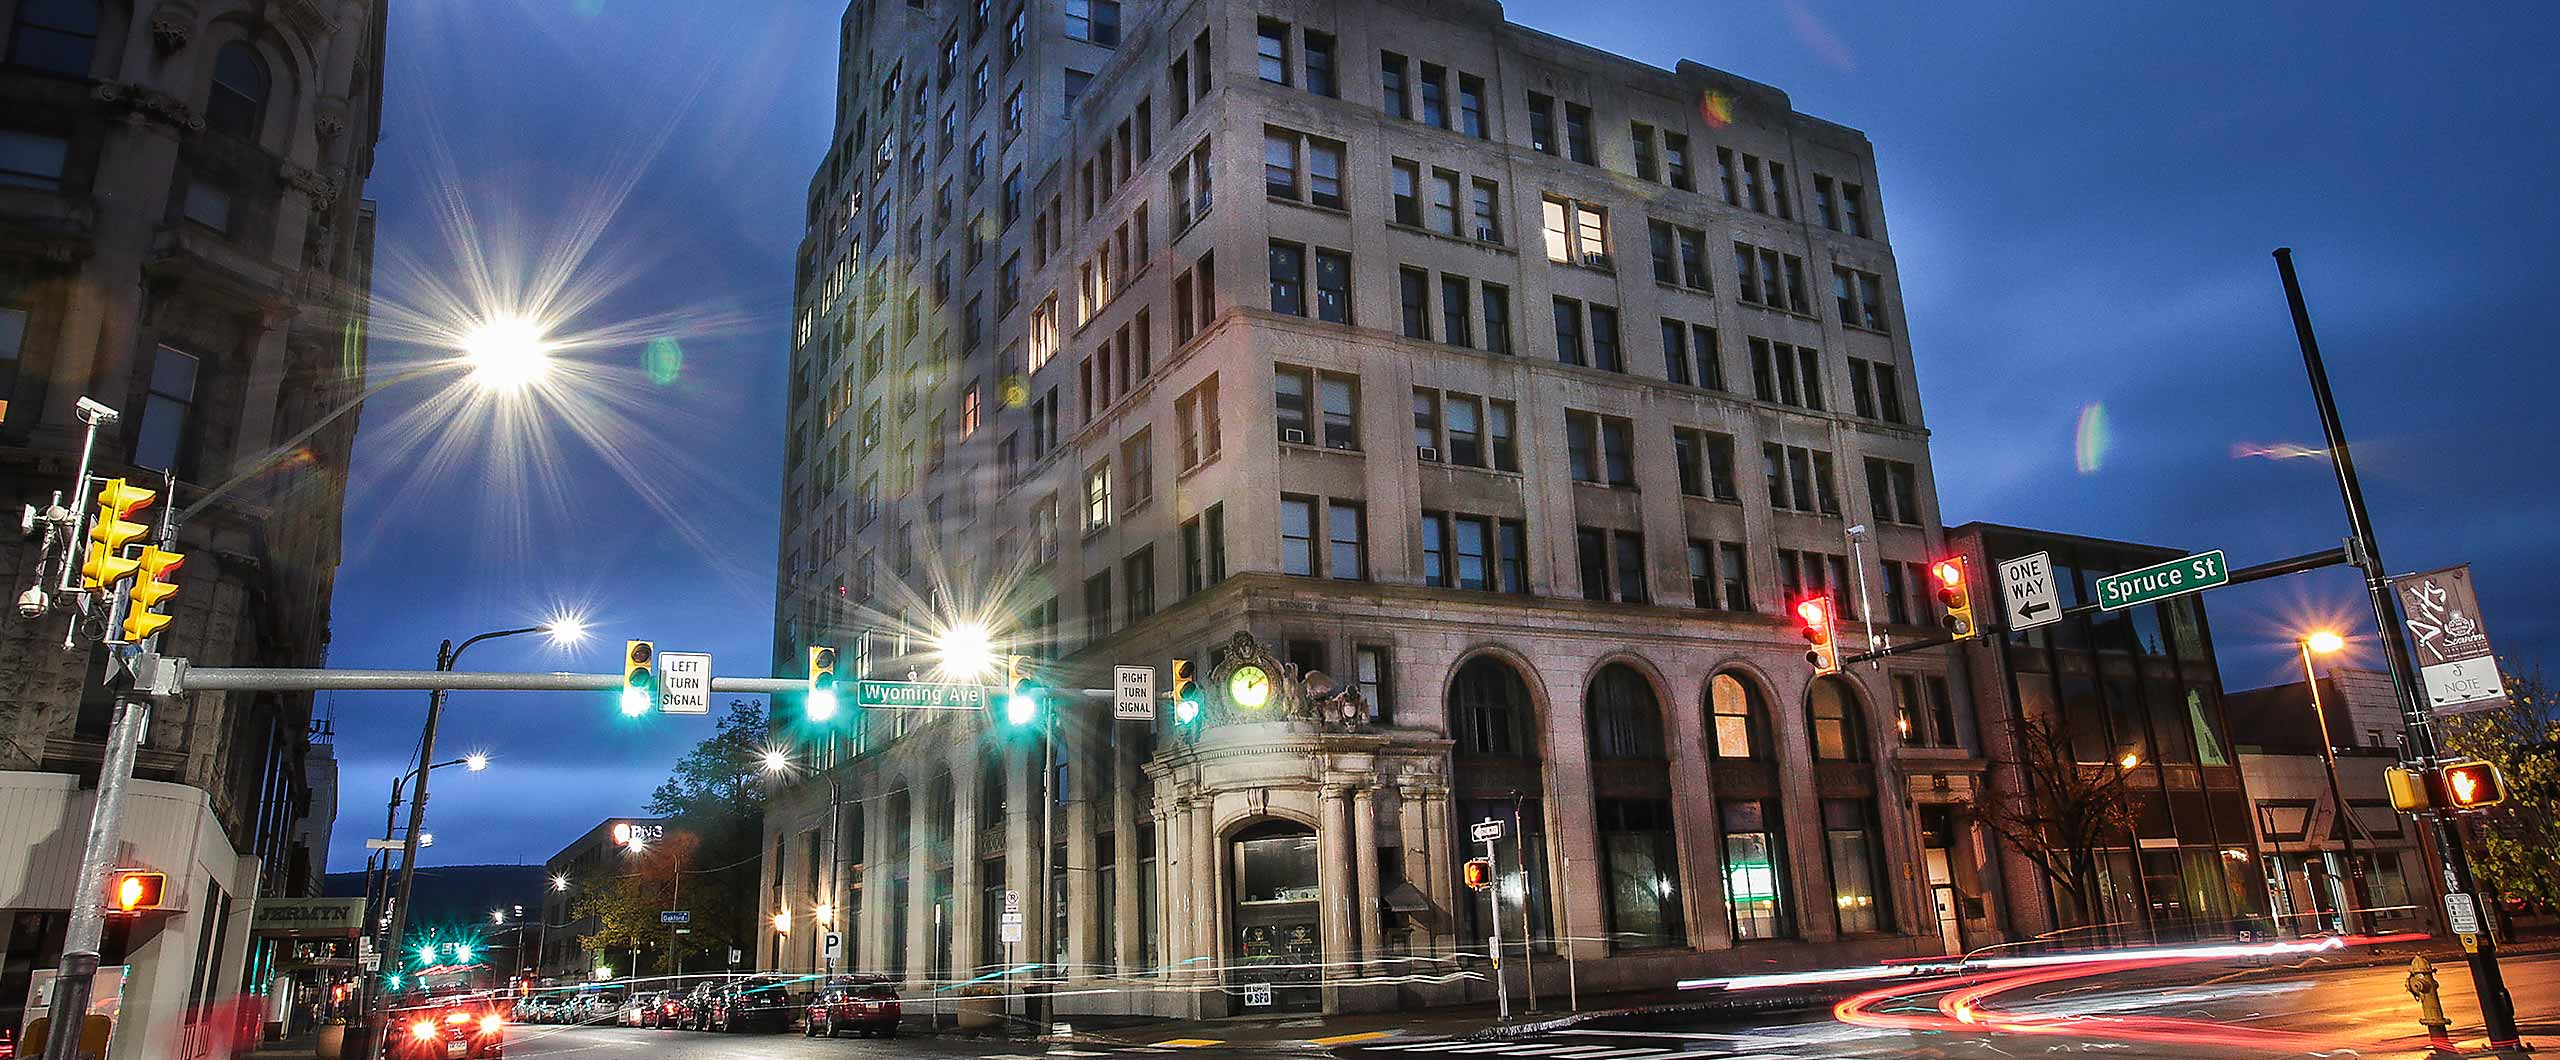 Professional offices, government offices, medical offices, dental offices, and law offices in the Bank Towers at 321 Spruce Street, Scranton, PA